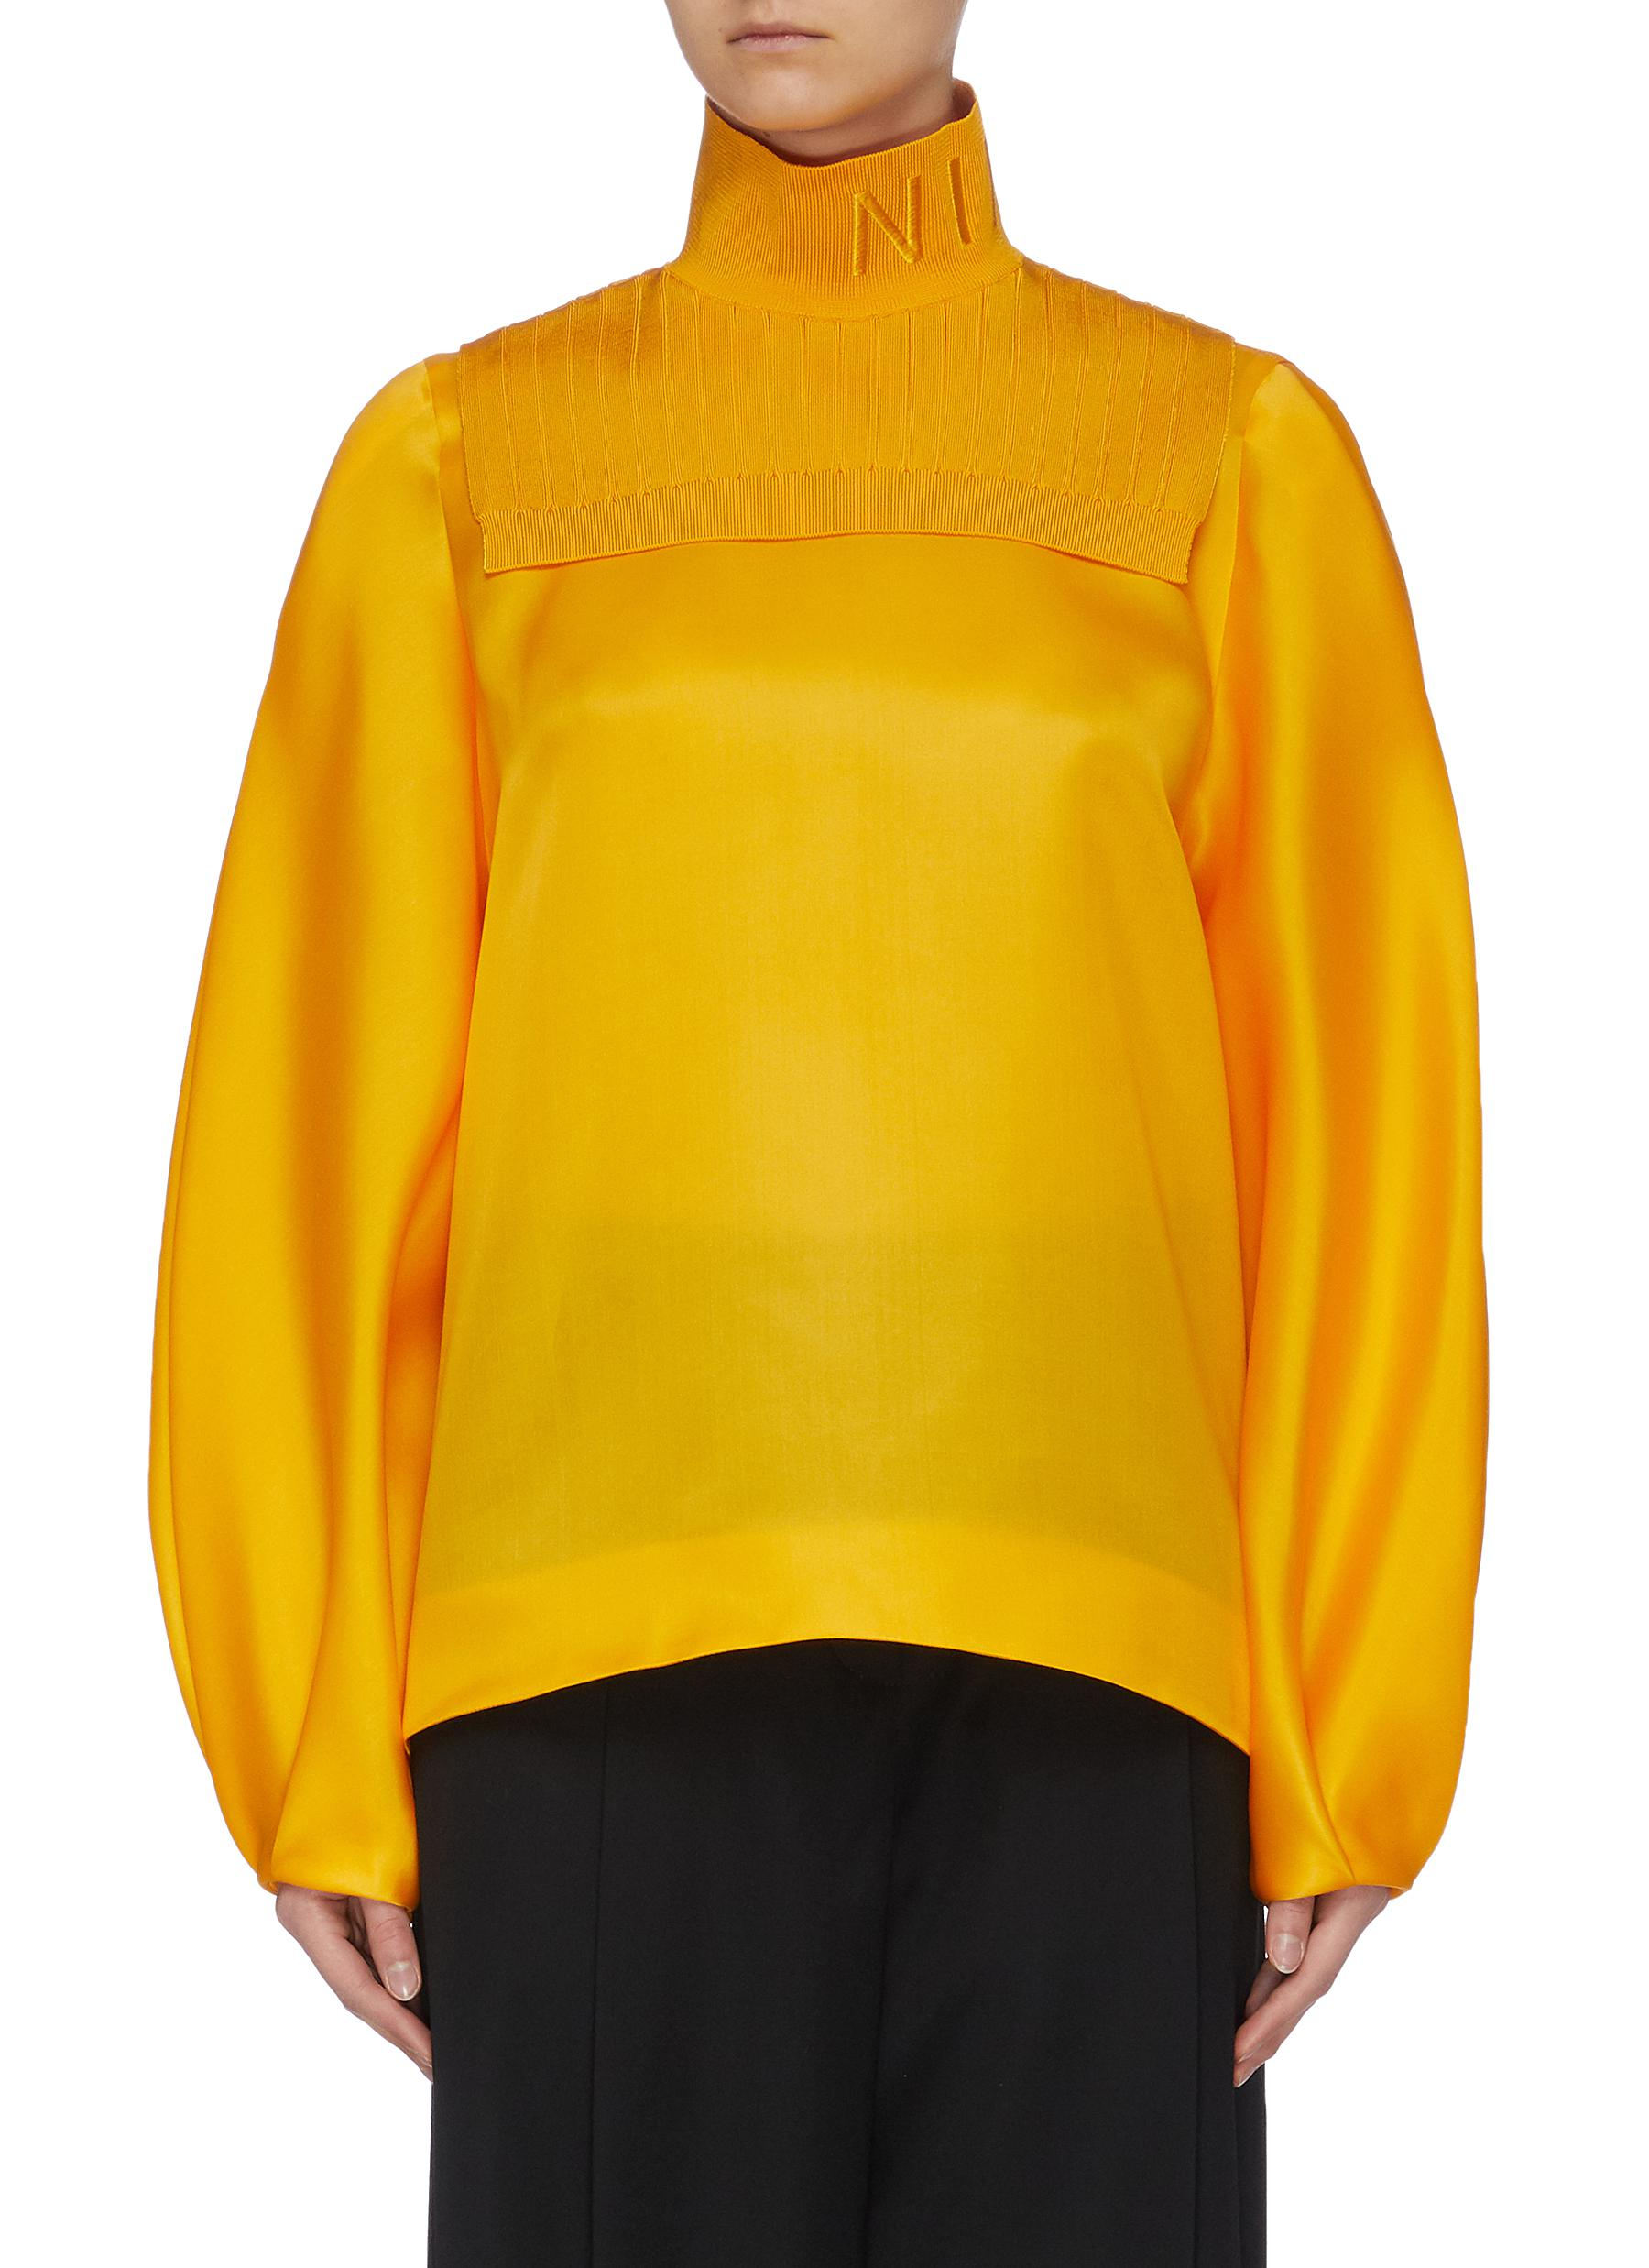 shop Nina Ricci 'Nina' logo embroidered knit turtleneck bib top online